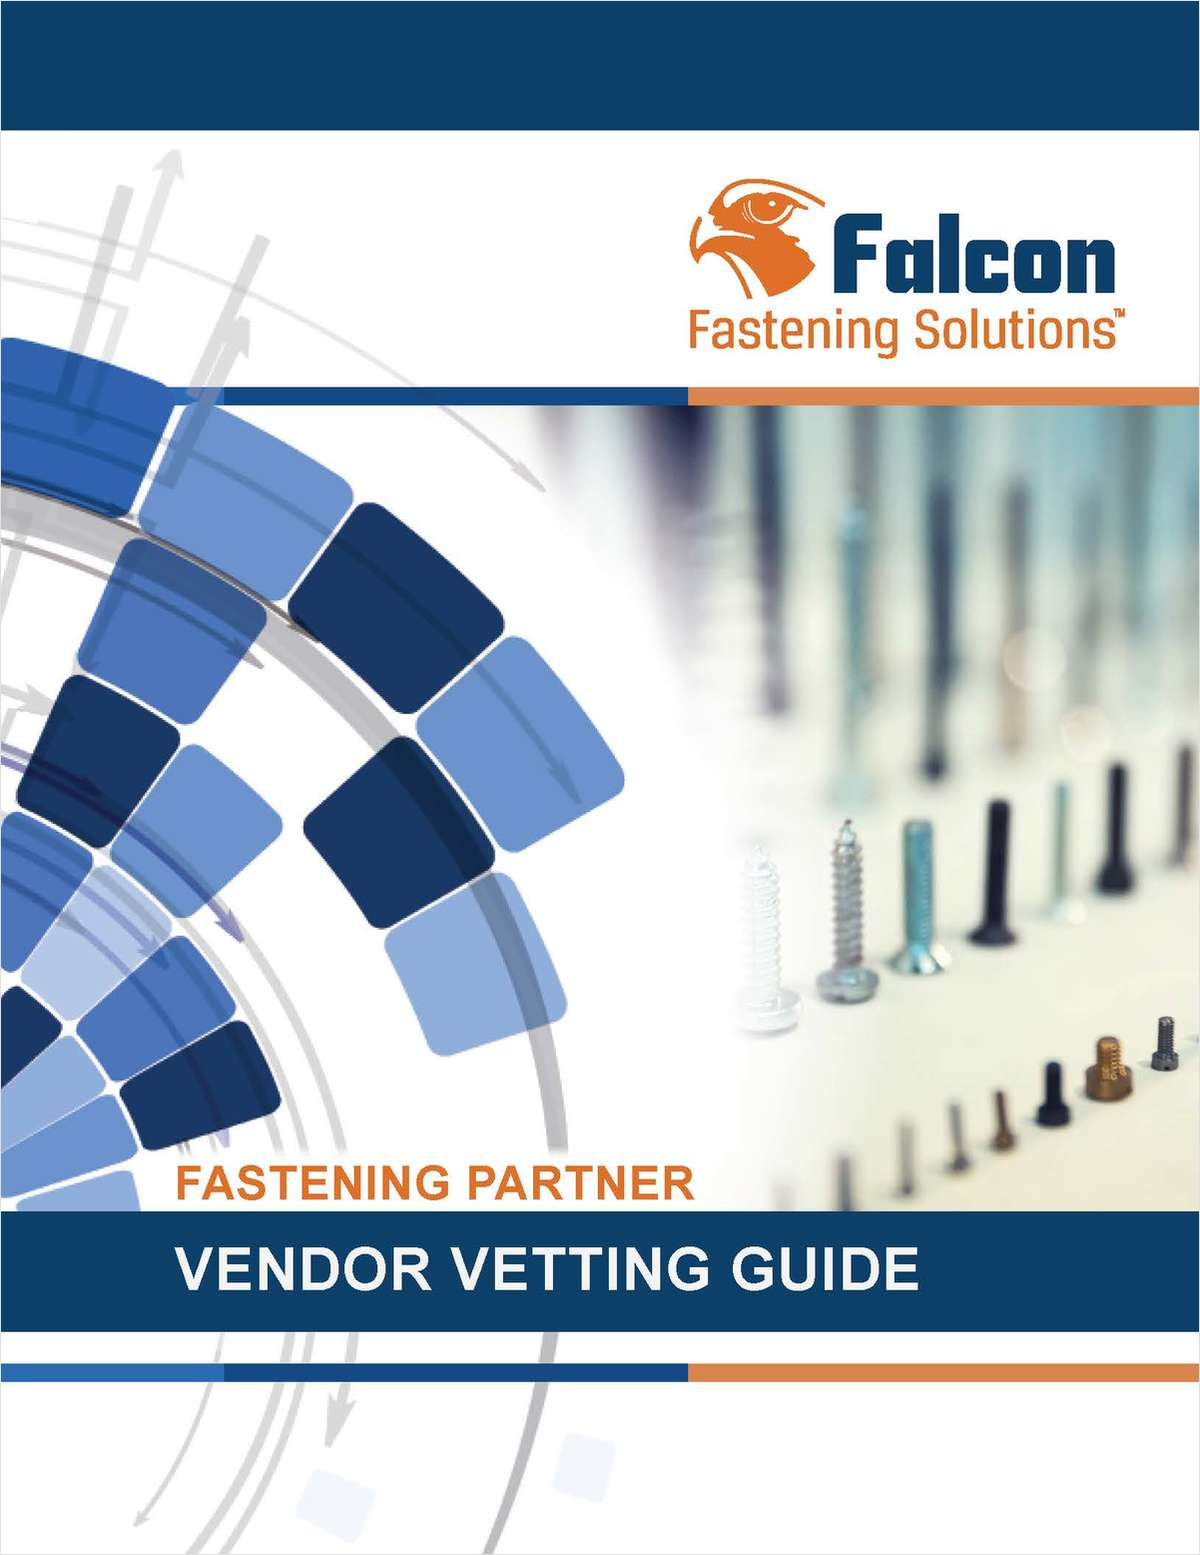 The Production Component Vendor Vetting Guide